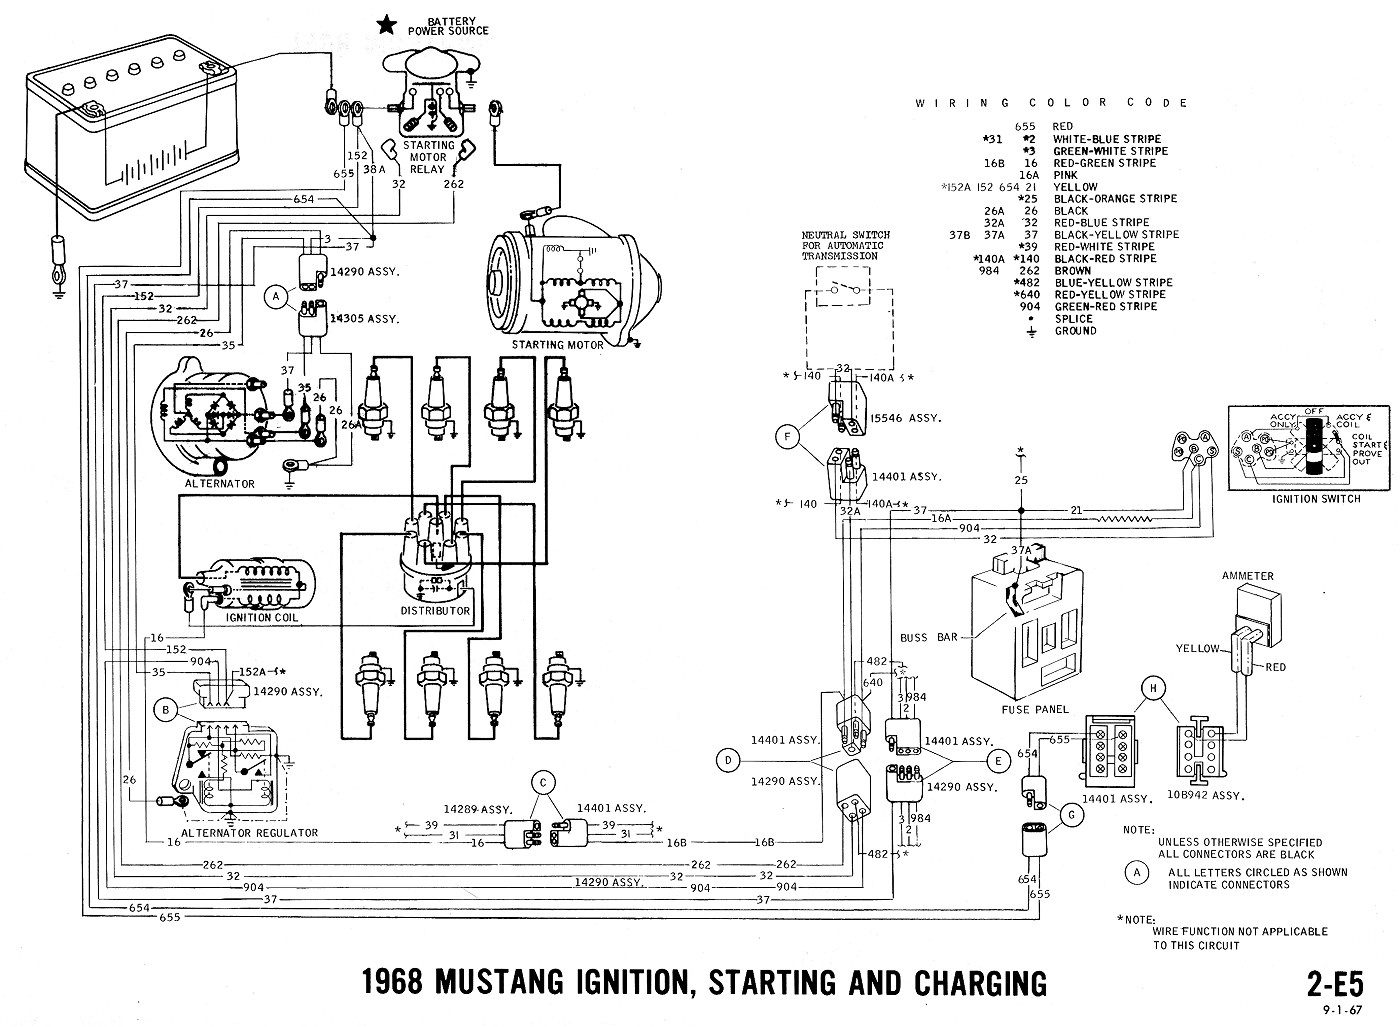 1968 Mustang Wiring Diagrams | Evolving Software